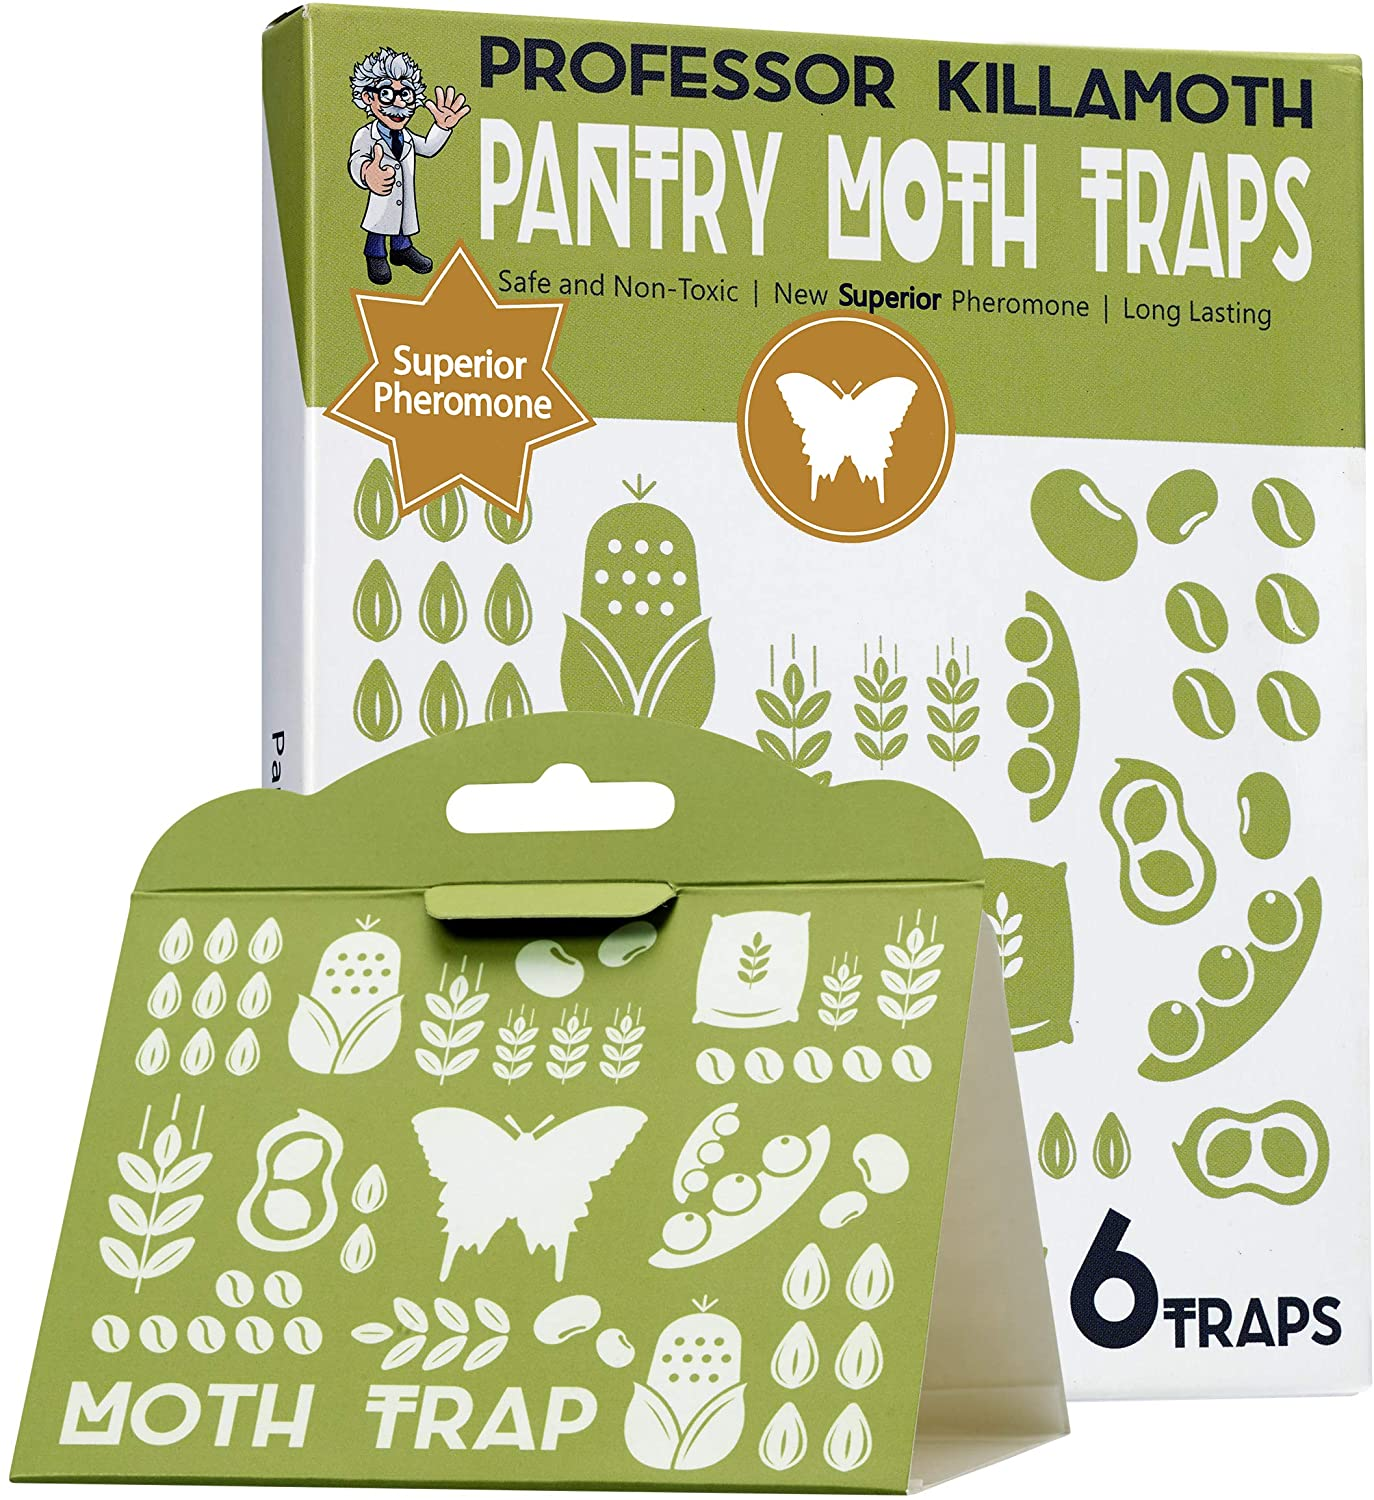 Pantry Moth Traps 6 Pack | No Insecticides | Child and Pet Safe | Superior Attractant